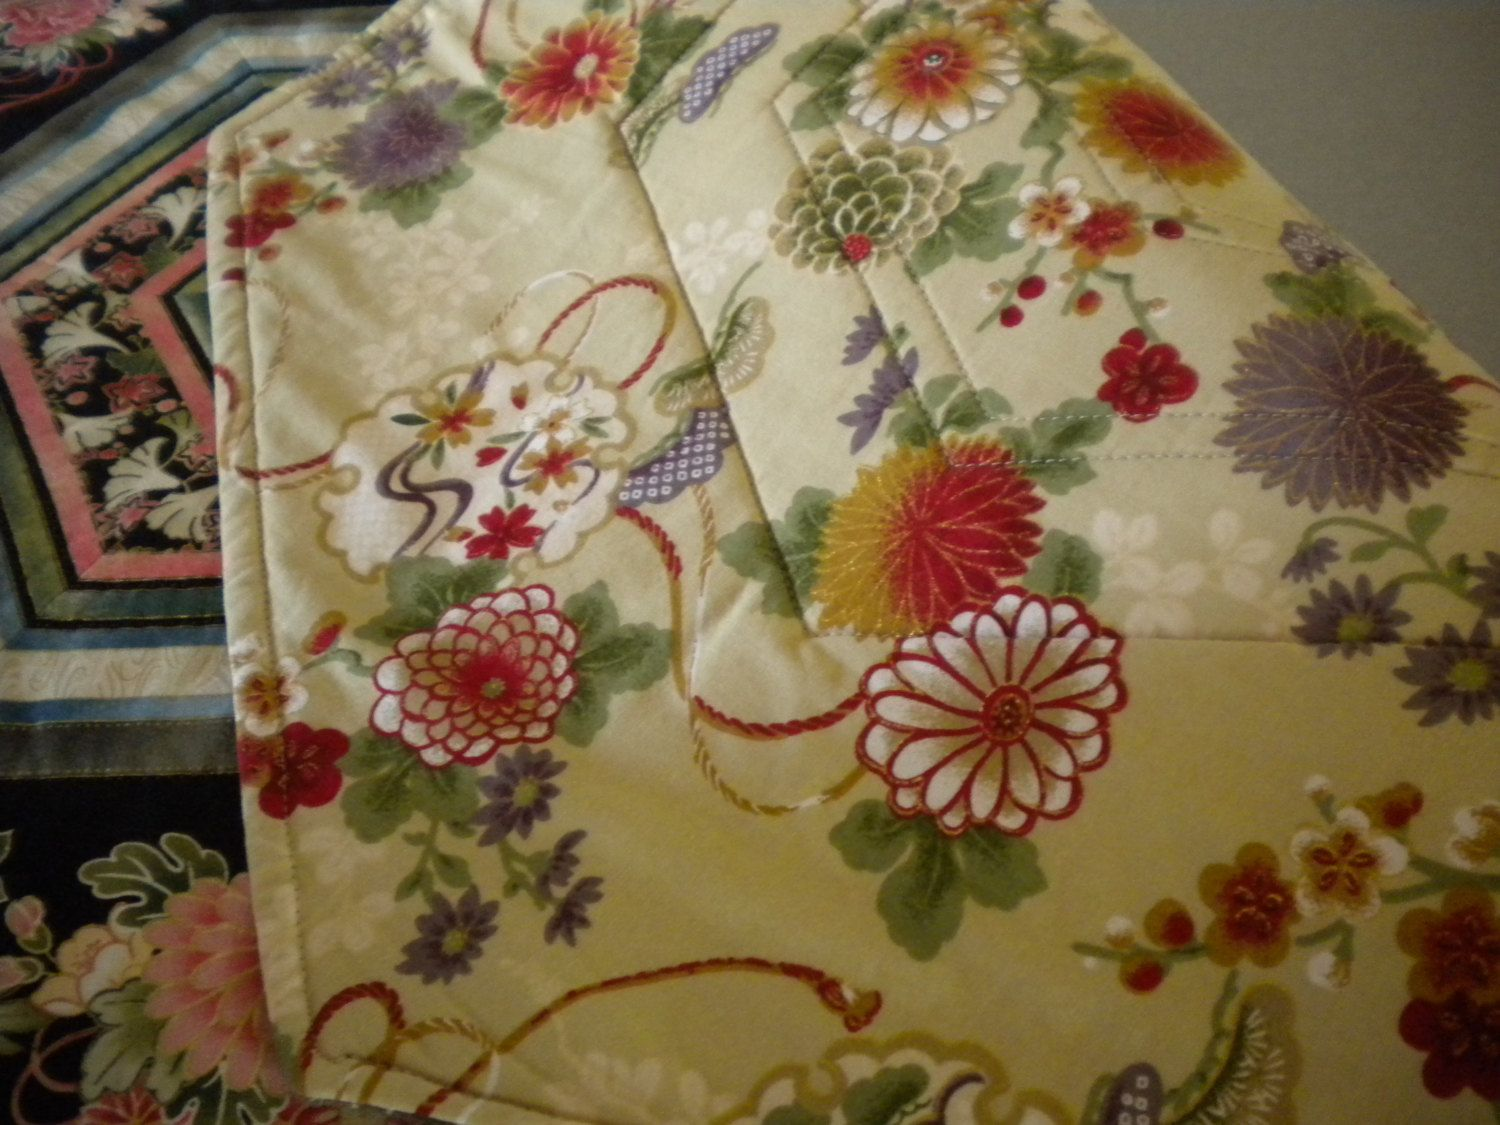 Quilted Table Runner, Asian Quilt, Floral Fabric, Floral Quilted Table  Topper, Asian Table Runner, Oriental Quilt Fabric, Asian Home Decor